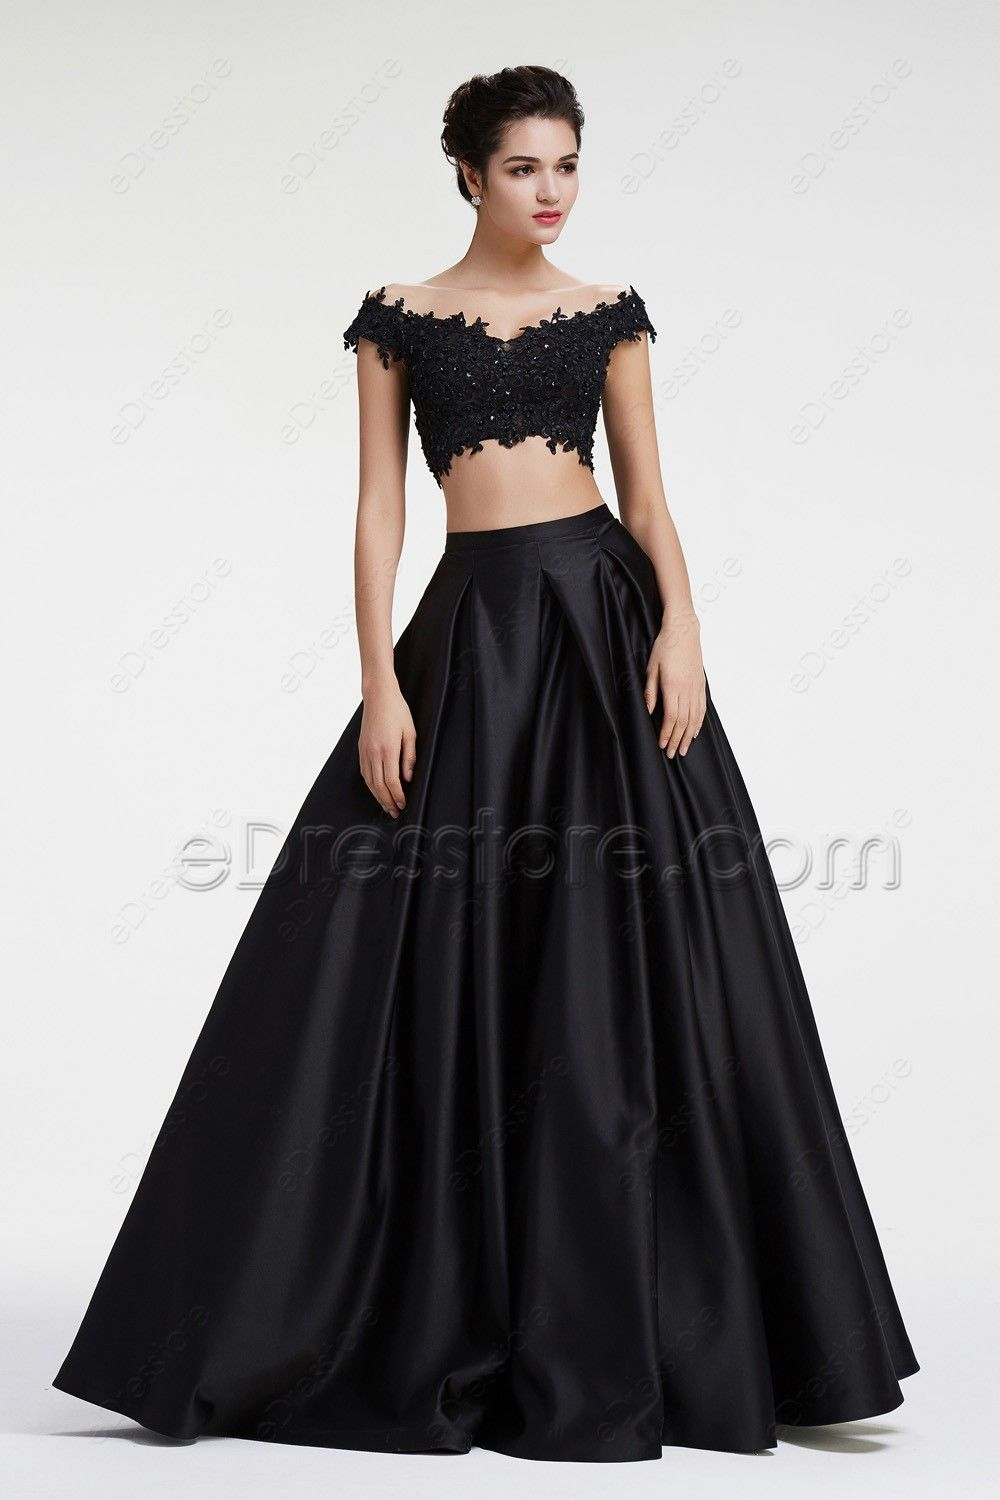 Off the shoulder sparkly beaded lace two piece prom dresses misc